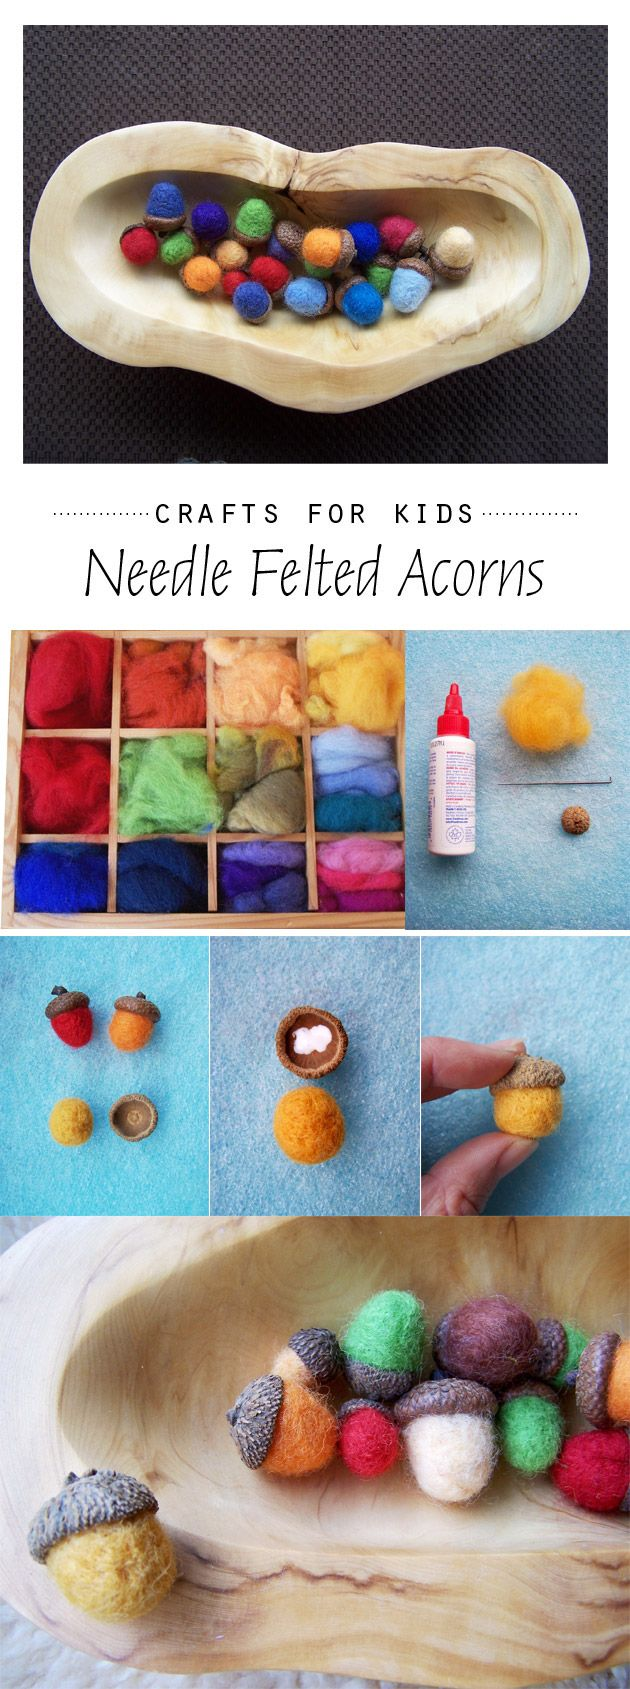 An inspiring fall craft activity, needle felted acorns. I am already picturing a big bowl of these little lovelies on our coffee table!